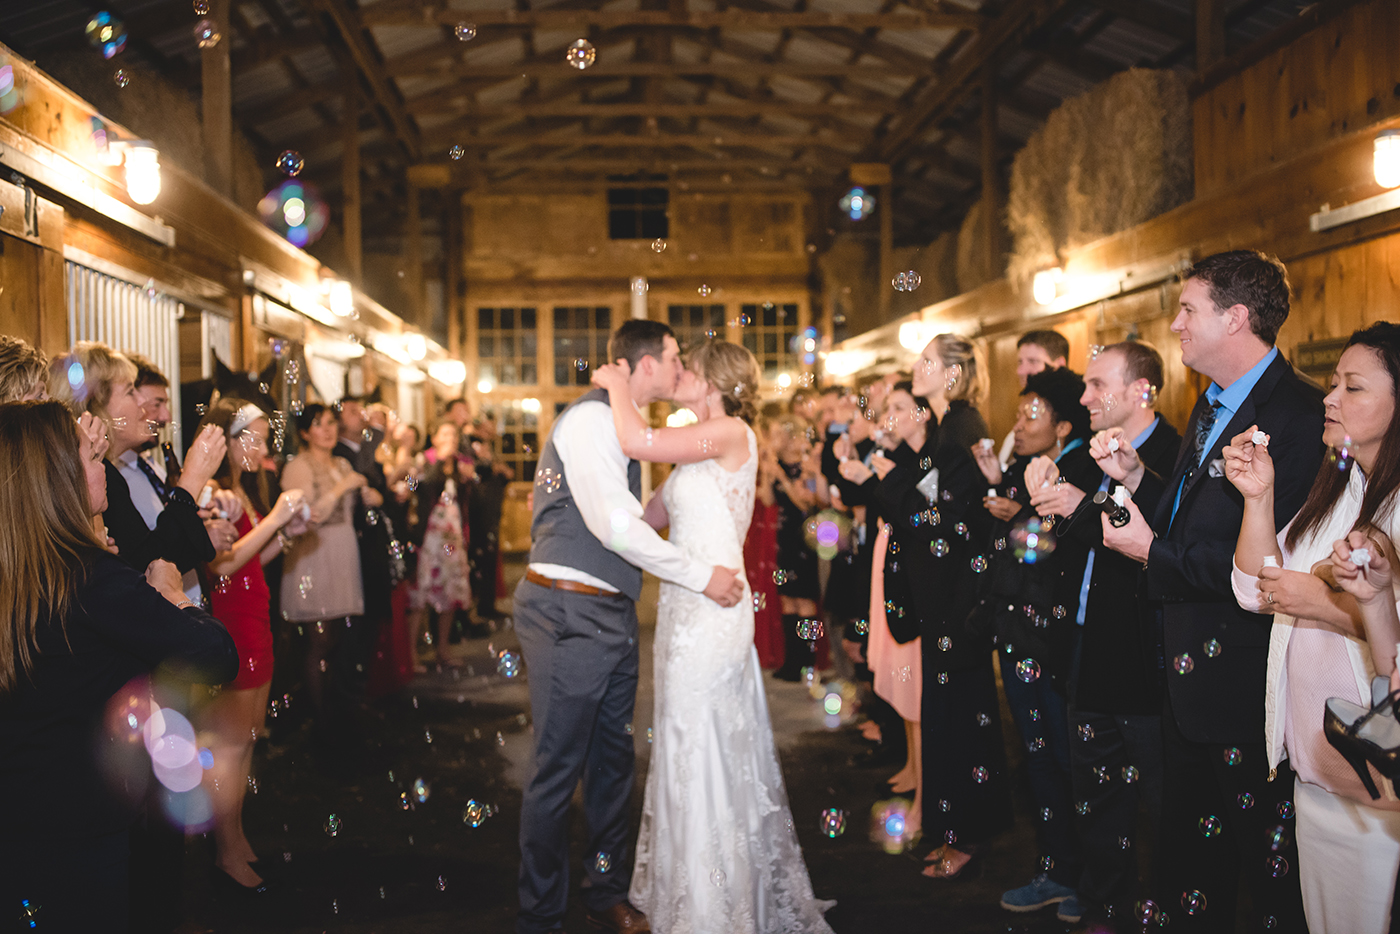 brewery wedding venues couple bubbles exit